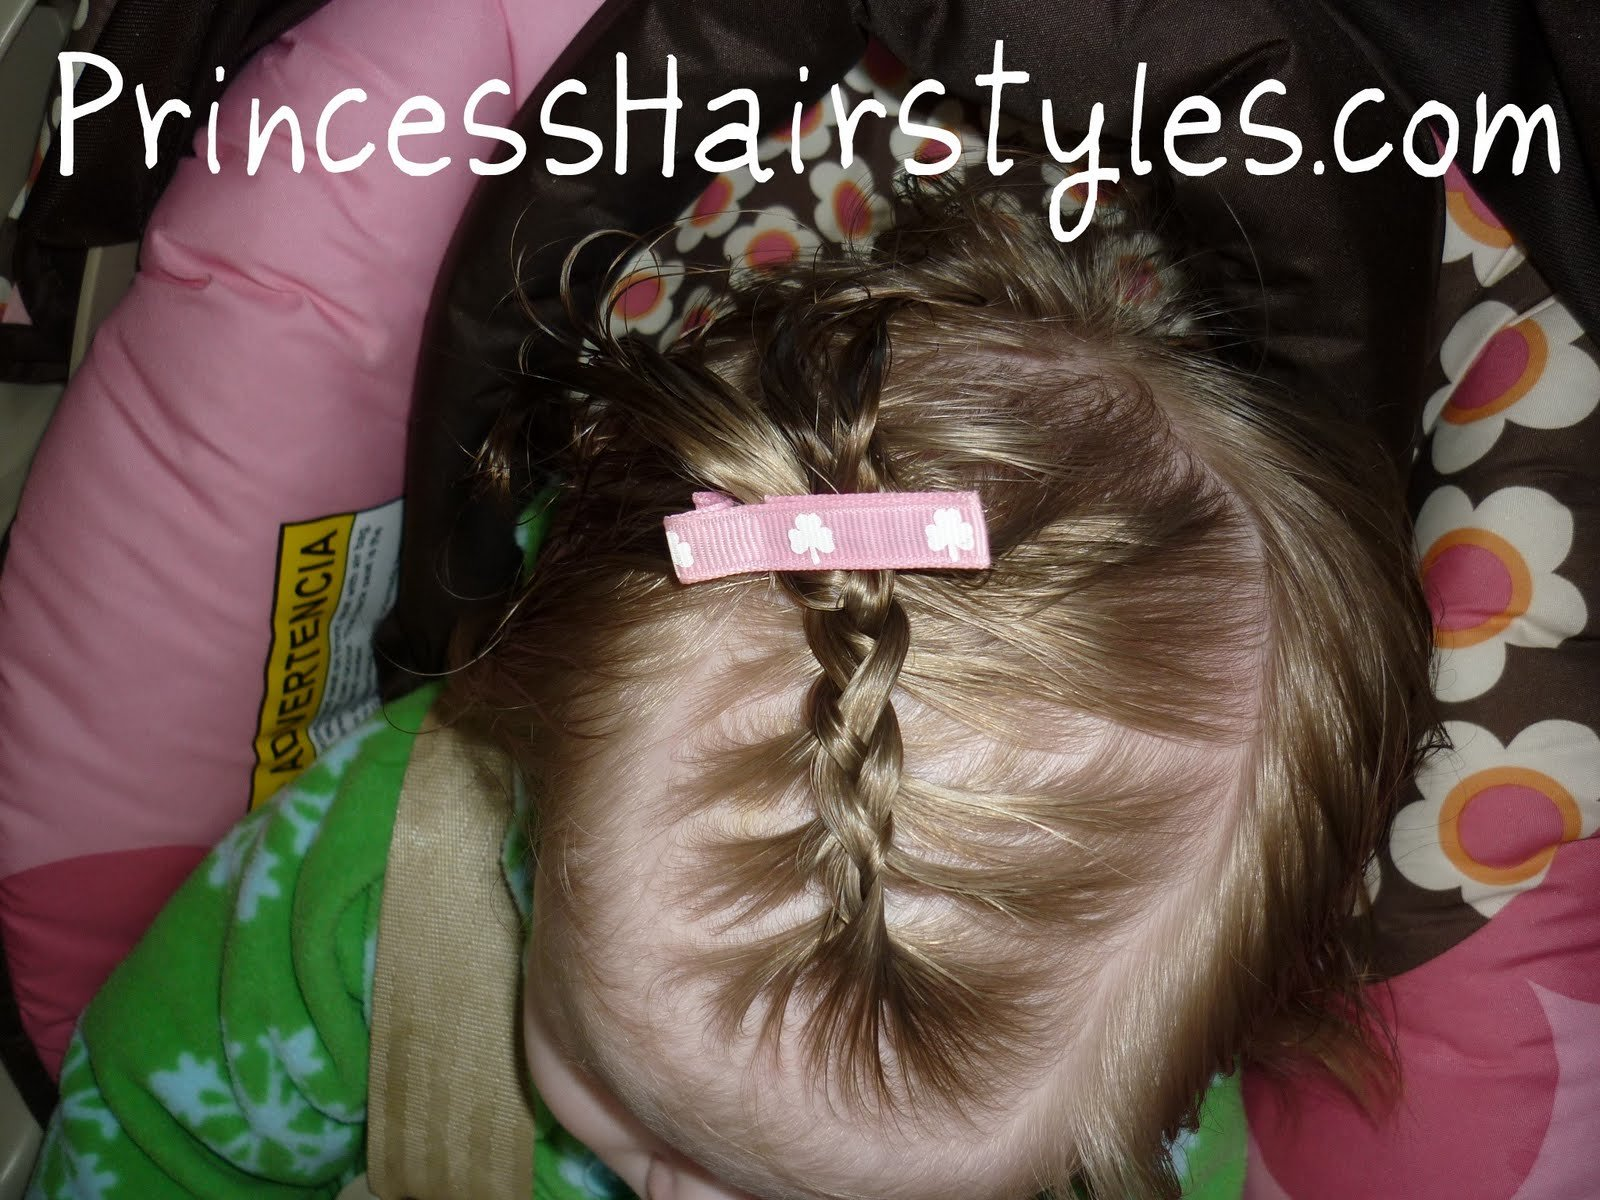 Free Tiny French Braids Baby Hairstyles Hairstyles For Girls Princess Hairstyles Wallpaper